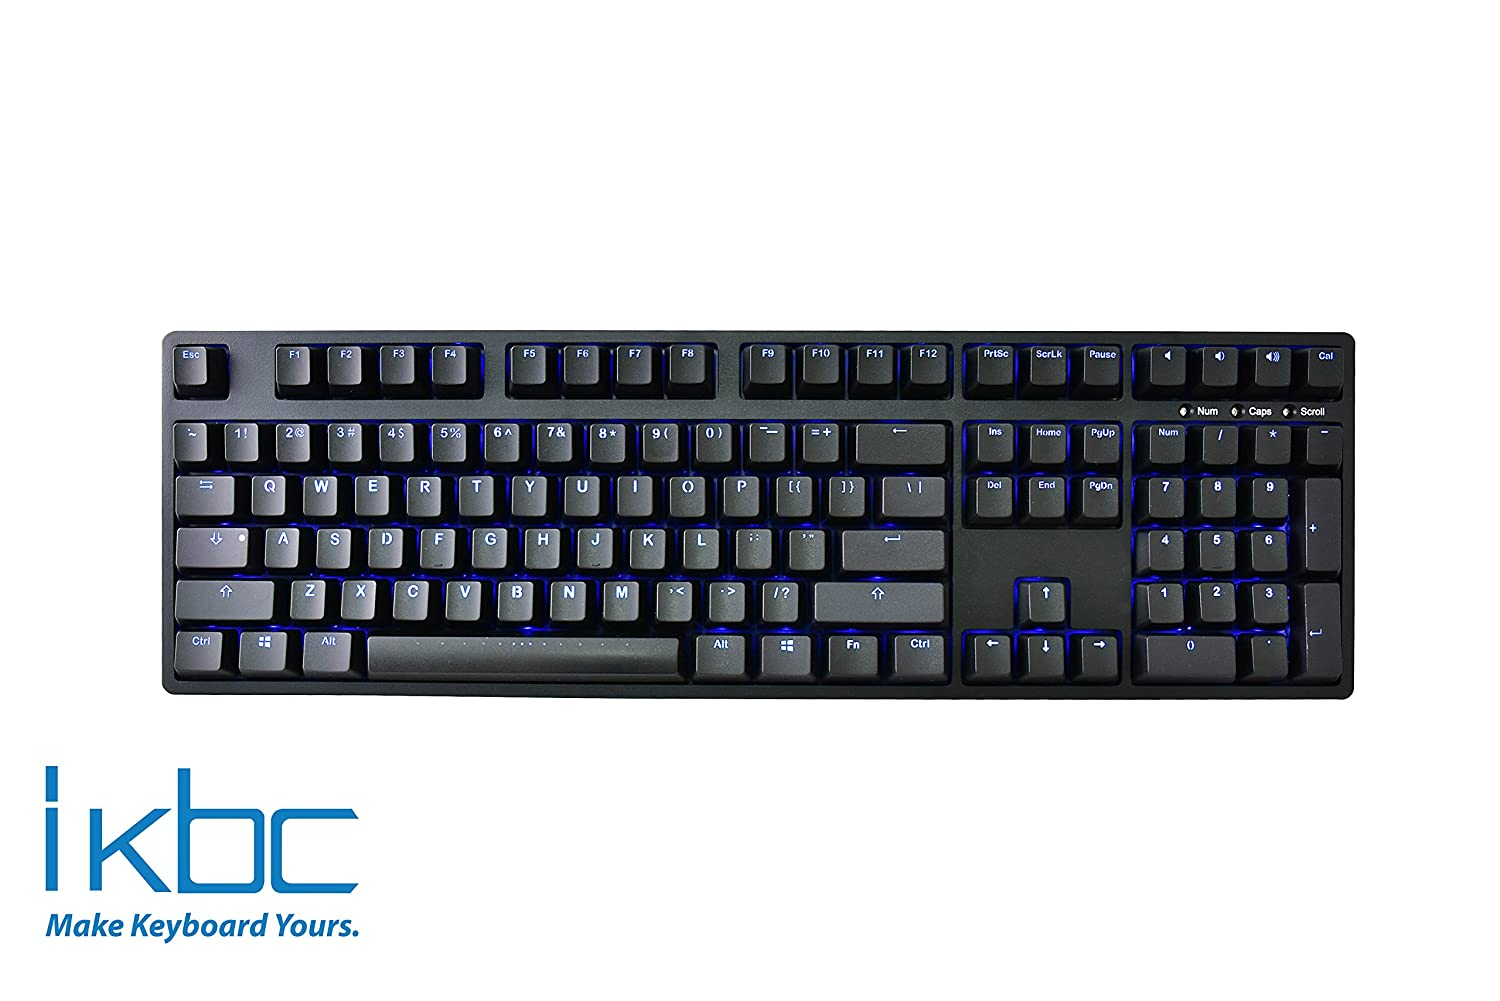 iKBC TD108 Blue Backlit LED Mechanical Keyboard with Cherry MX Red Switch for Windows Mac, Full Size Computer Keyboards, Black Case, Black PBT Doubleshot 108 Keycaps, ASIN US QWERTY